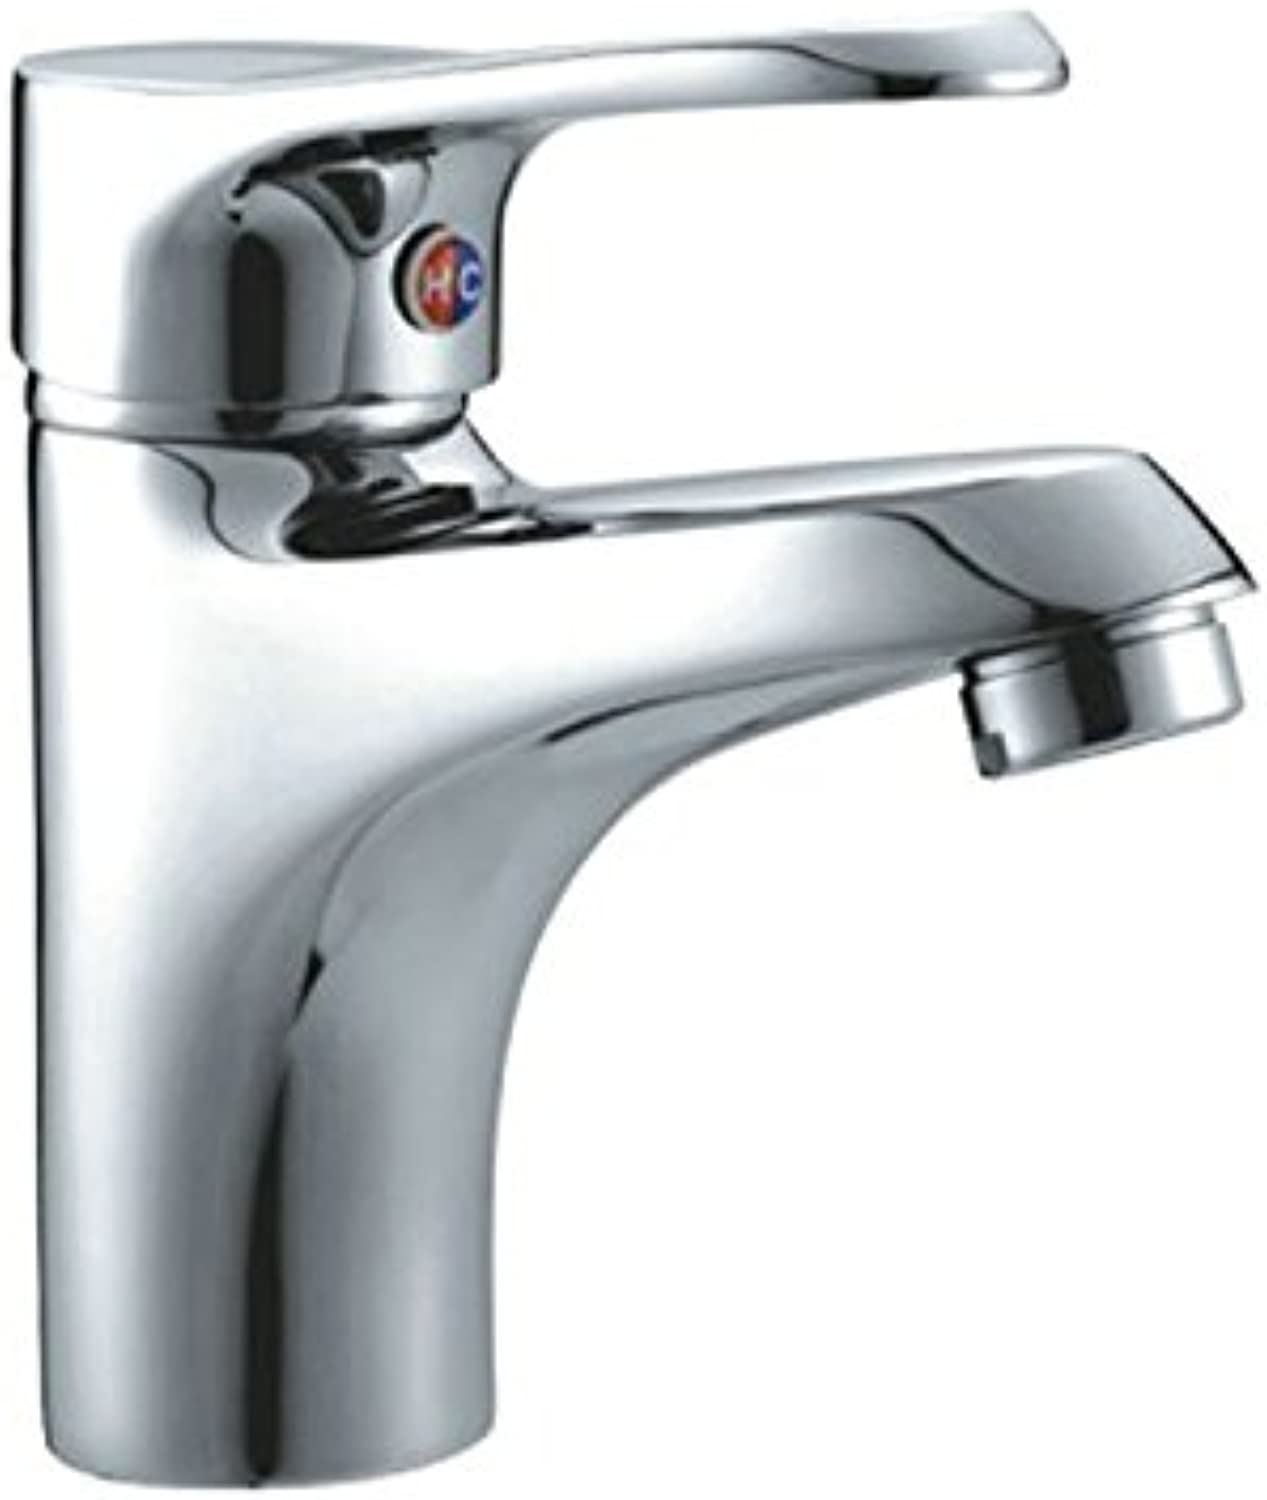 Fbict Basin Faucet Hardware Faucet hot and Cold Water Single Hole Faucet Hotel Household Faucet for Kitchen Bathroom Faucet Bid Tap